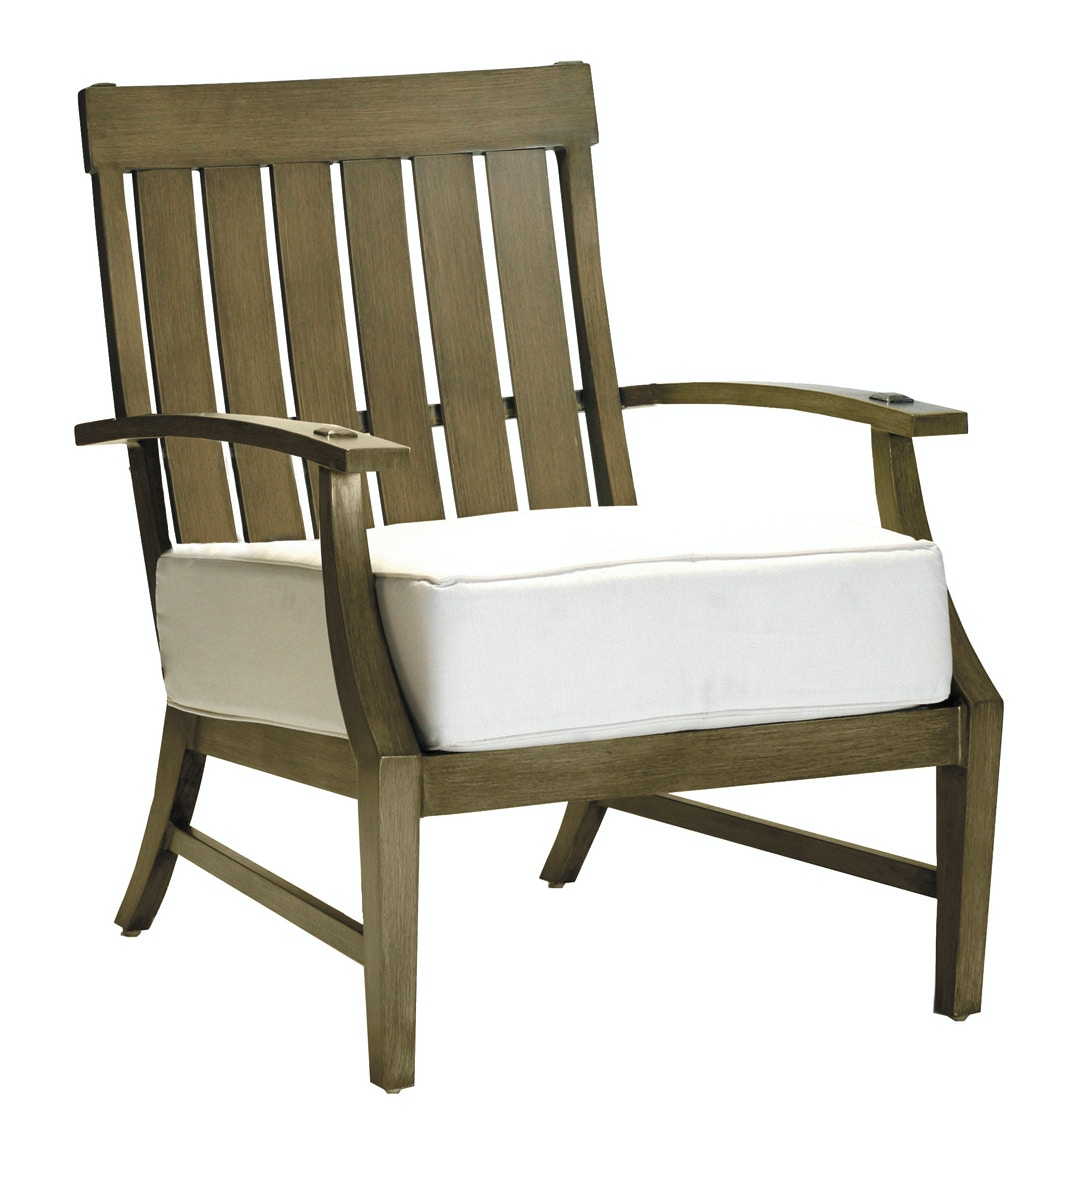 333715. Croquet Aluminum Lounge Chair